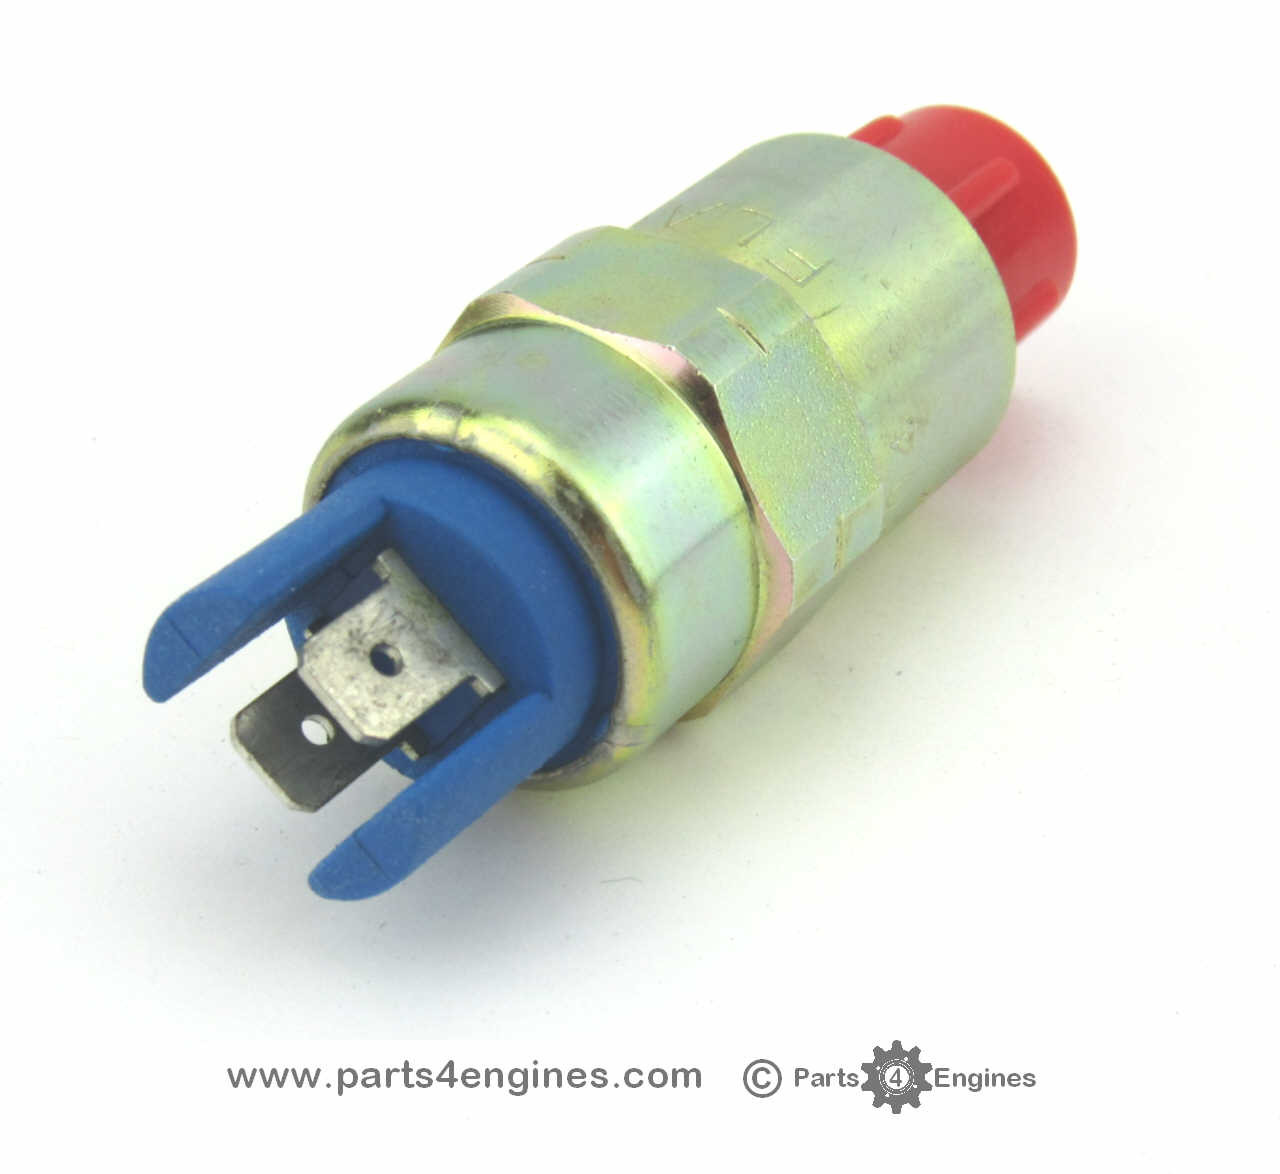 Perkins 4.248 12V Stop Solenoid from parts4engines.com- twin spade connection